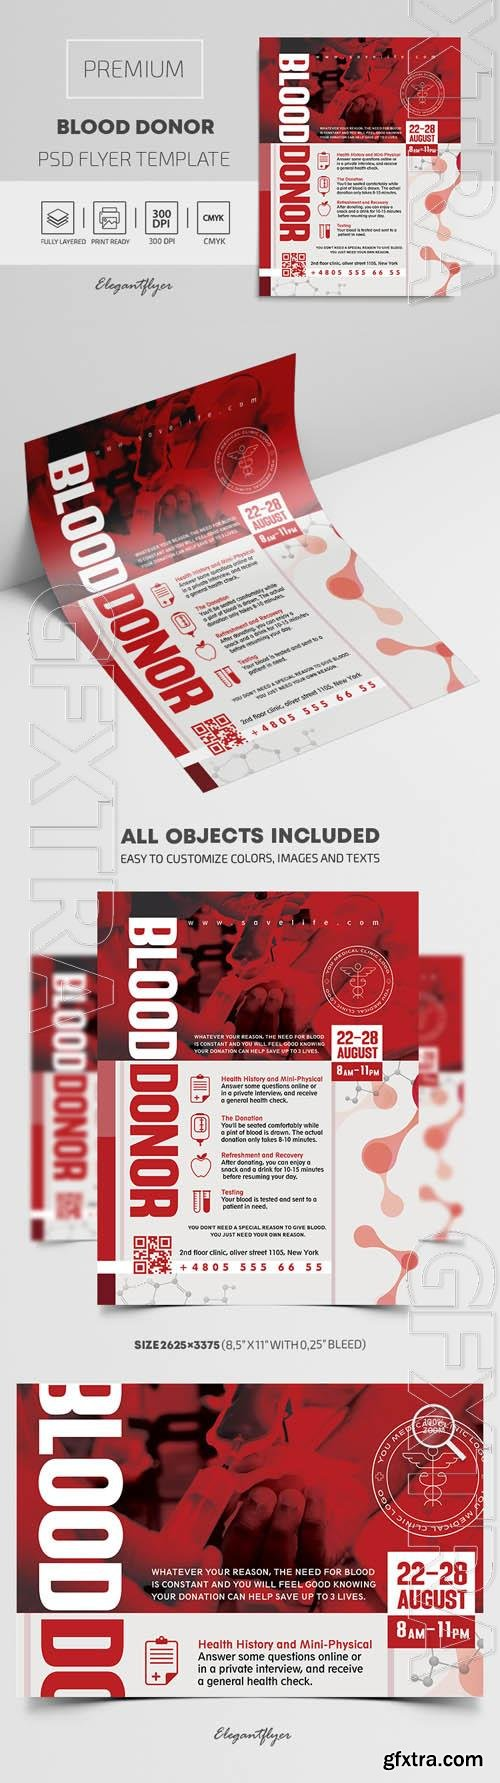 Blood Donor Premium PSD Flyer Template